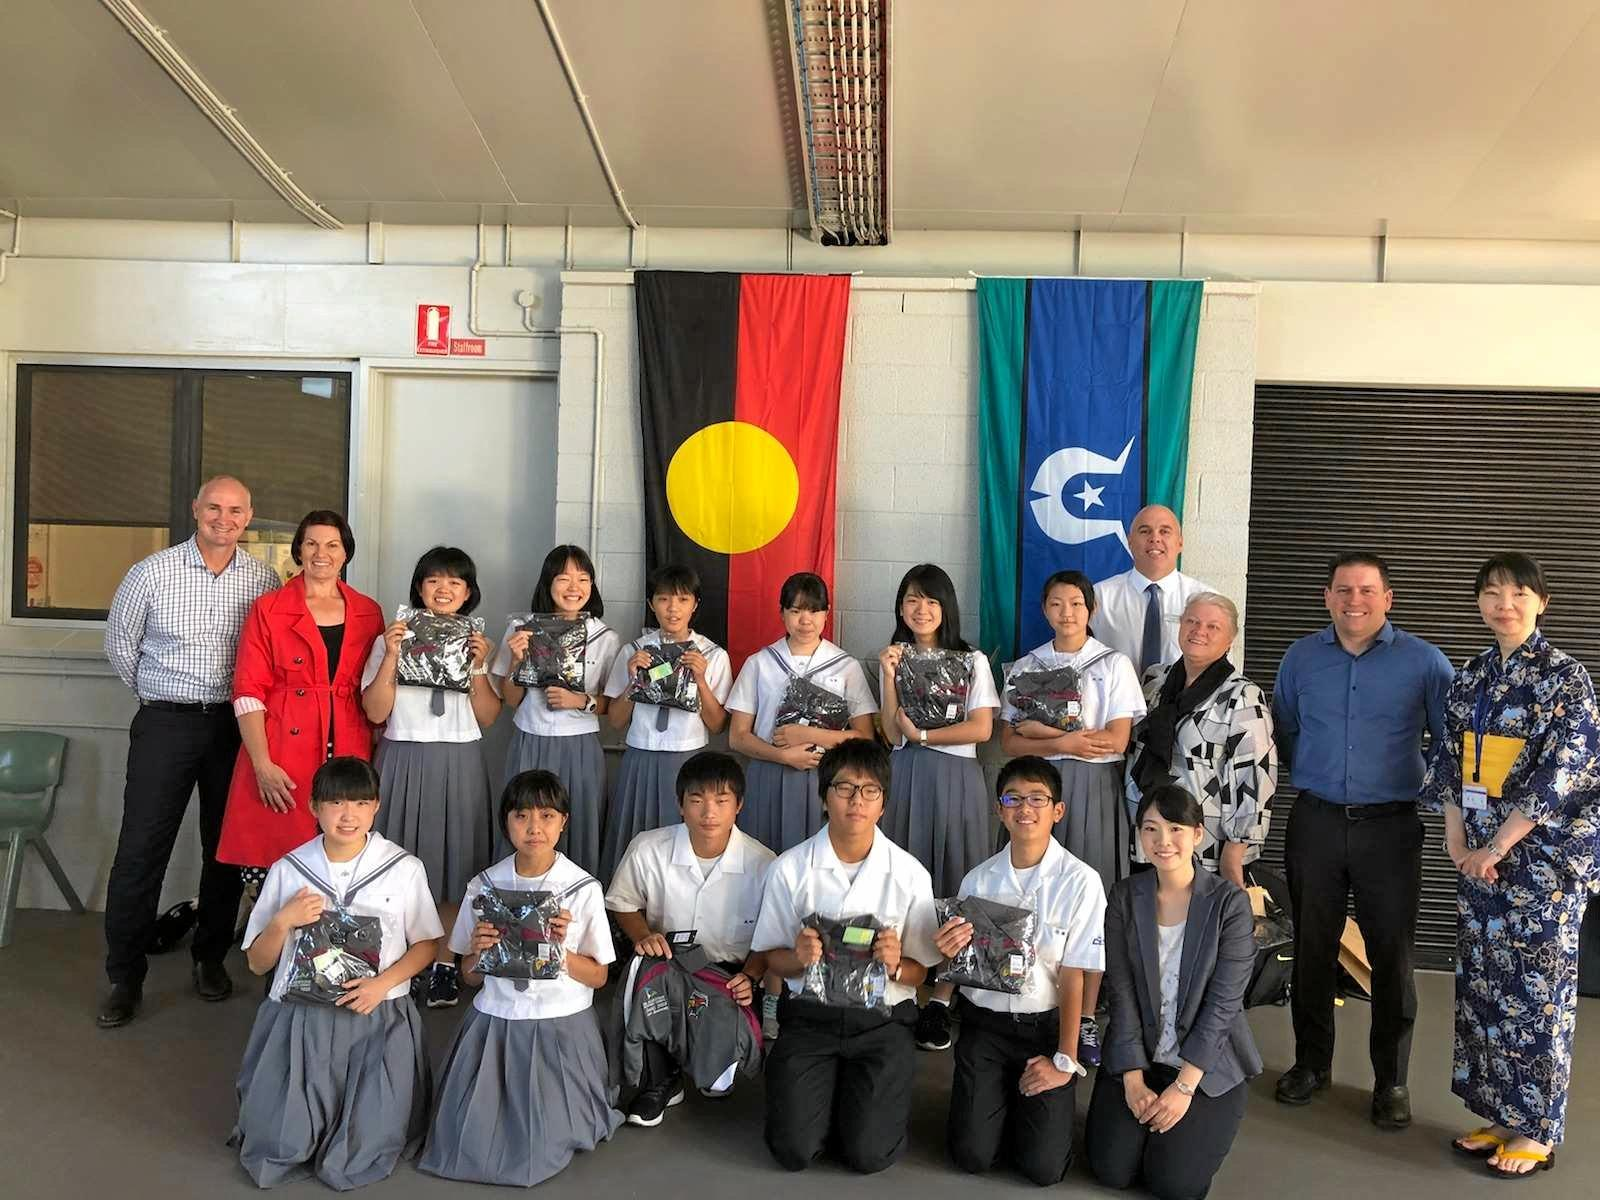 Students and teachers from Jonan High School in Saiki City with Member for Gladstone Glenn Butcher, Toolooa SHS teacher Bonnie Assman, Toolooa SHS principal Justin Harrison, Liz Cunningham (Patron of Toolooa SHS) and Mayor Matt Burnett.